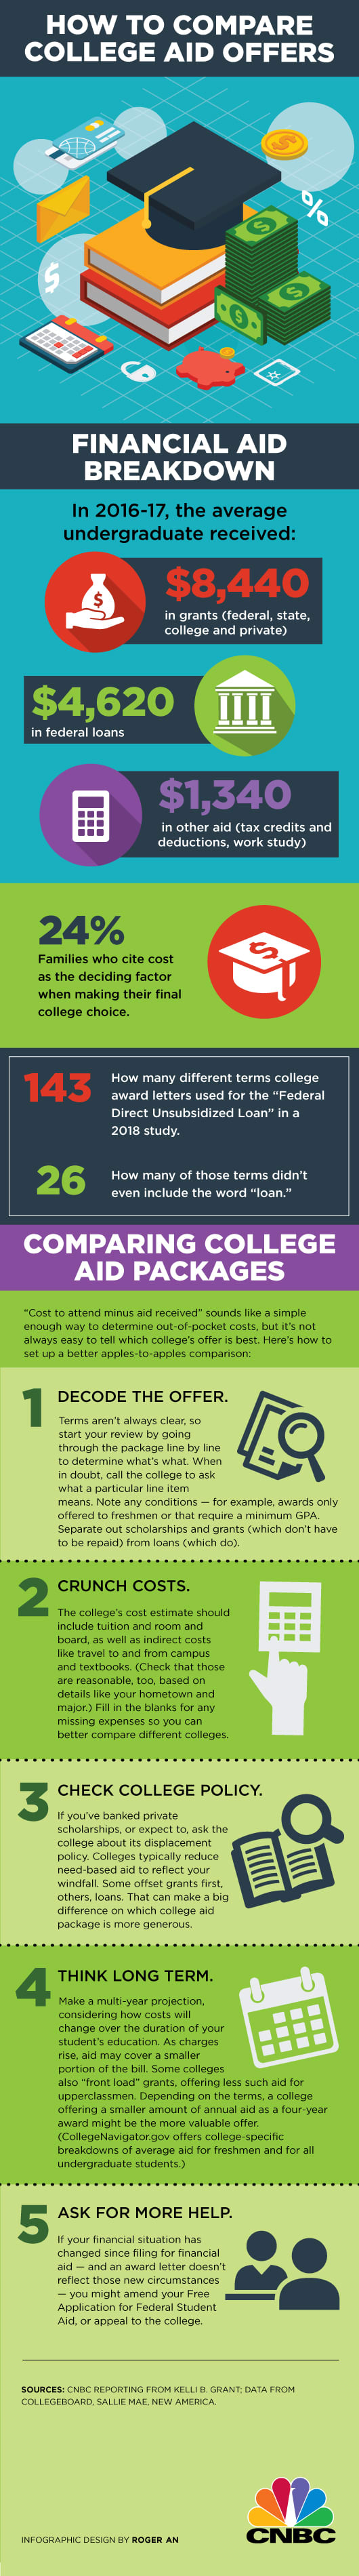 Comparing college aid offers INFOGRAPHIC